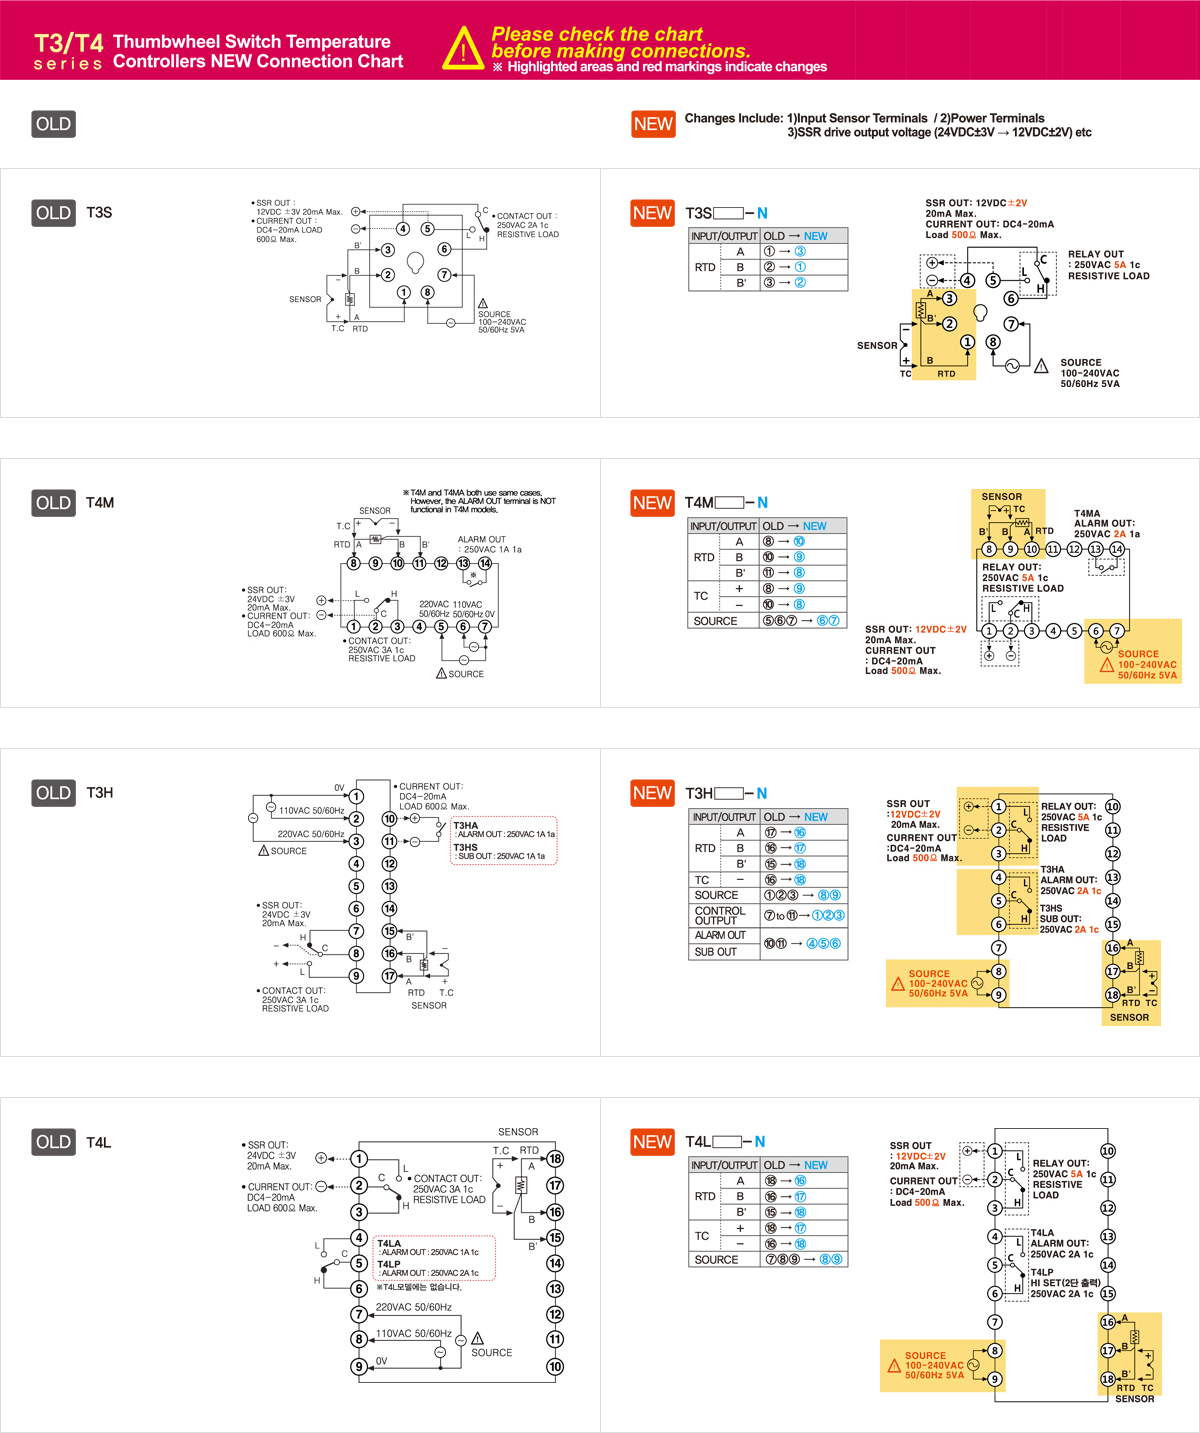 T3/T4 Series Thumbwheel Switch Temperature Controllers NEW Connection Chart. Please check the chart before making connections. ※Highlighted areas and red markings indicate changes. New : Changes Include 1)Input Sensor Terminals / 2)Power Terminals 3)SSR drive output voltage (24VDC±3V → 12VDC±2V) etc